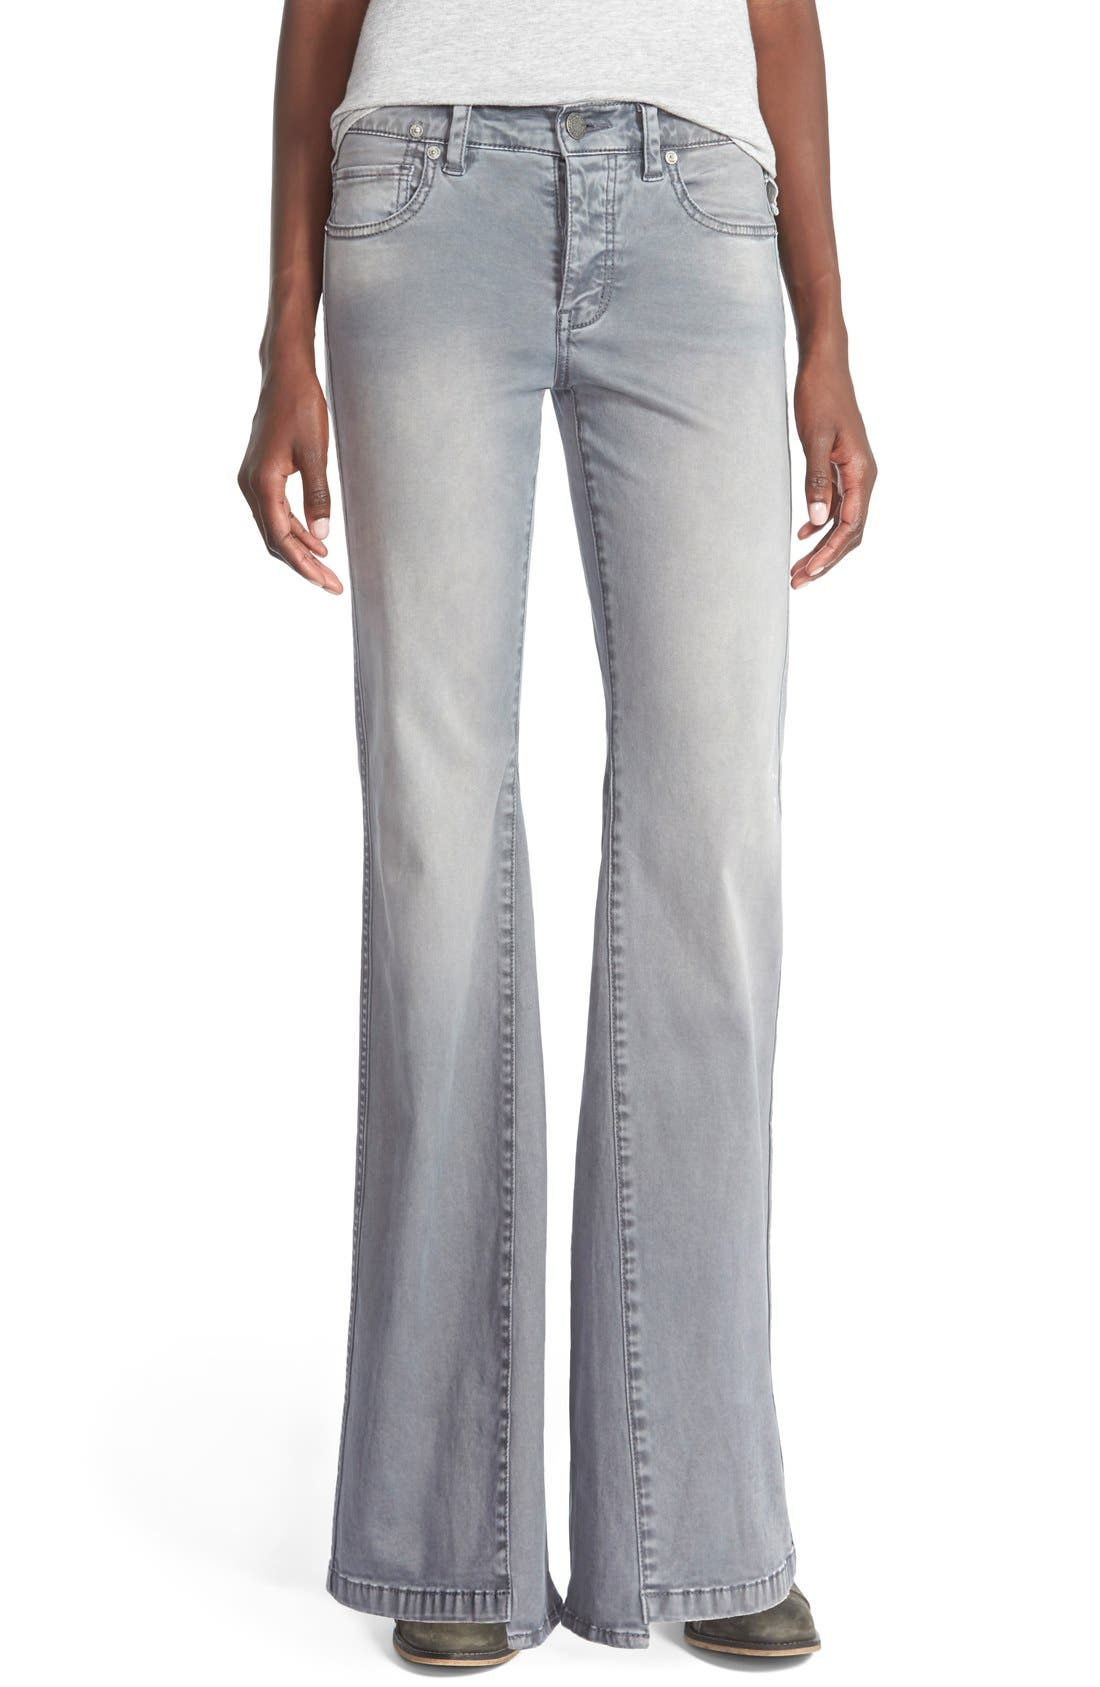 Alternate Image 1 Selected - Free People 'Gold Coast' Flare Jeans